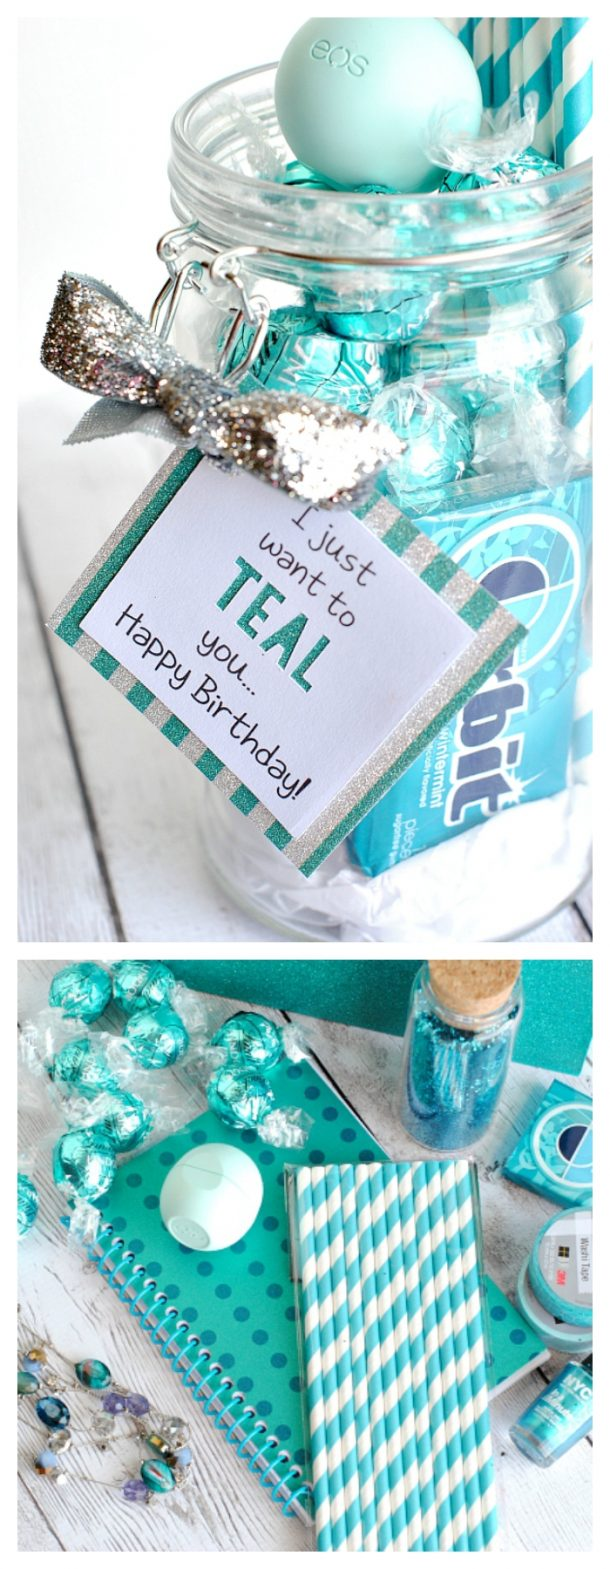 Do It Yourself Gift Basket Ideas for ALL OCCASIONS!  sc 1 st  Landeelu & Do it Yourself Gift Basket Ideas for All Occasions - landeelu.com